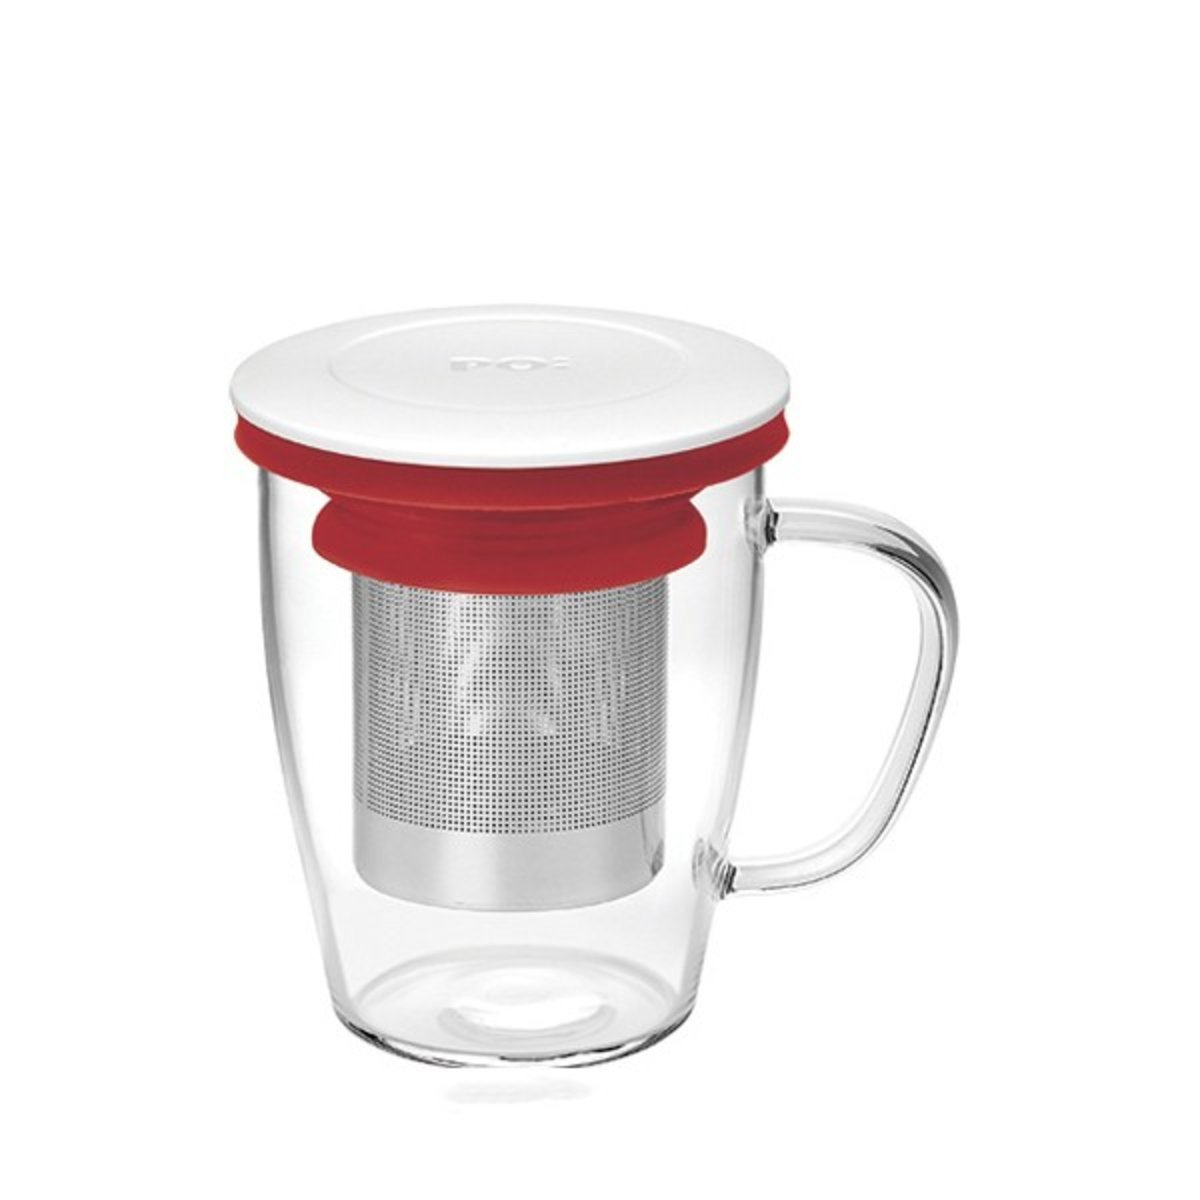 Ming Infuser Glass Mug  (White Lid with Red Ring)